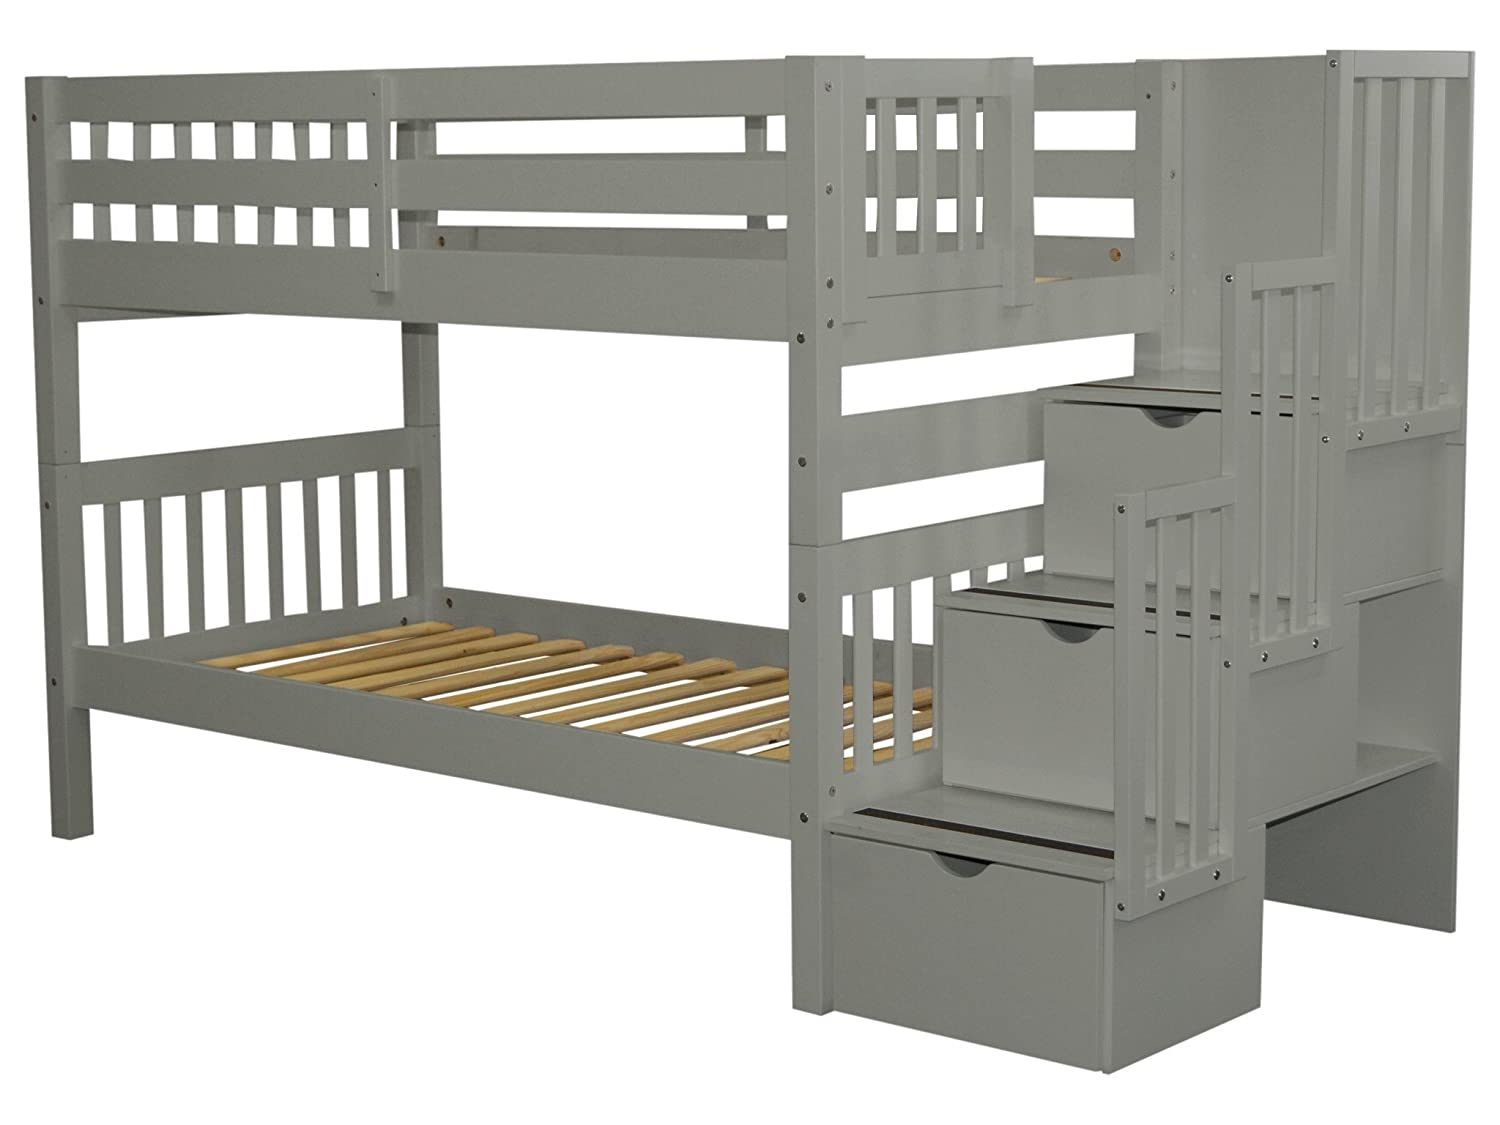 04c8f8f7326245 Amazon.com: Bedz King Stairway Bunk Beds Twin over Twin with 3 Drawers in  the Steps, Gray: Kitchen & Dining